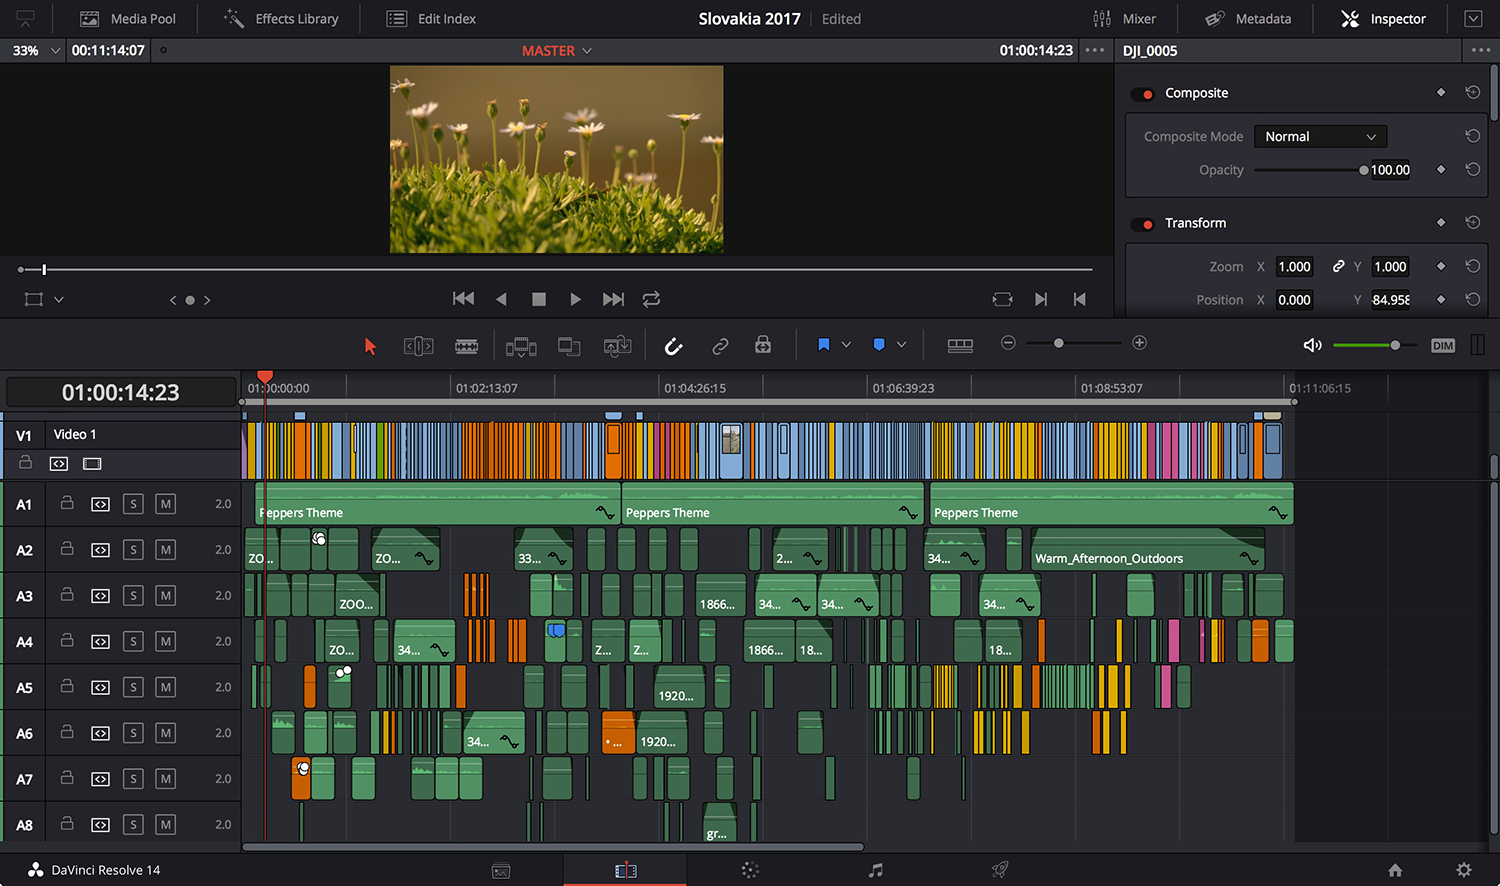 I mixed way too many framerates in this project. In the video layer the blue represents 24fps footage. Every other color represents a different framerate.